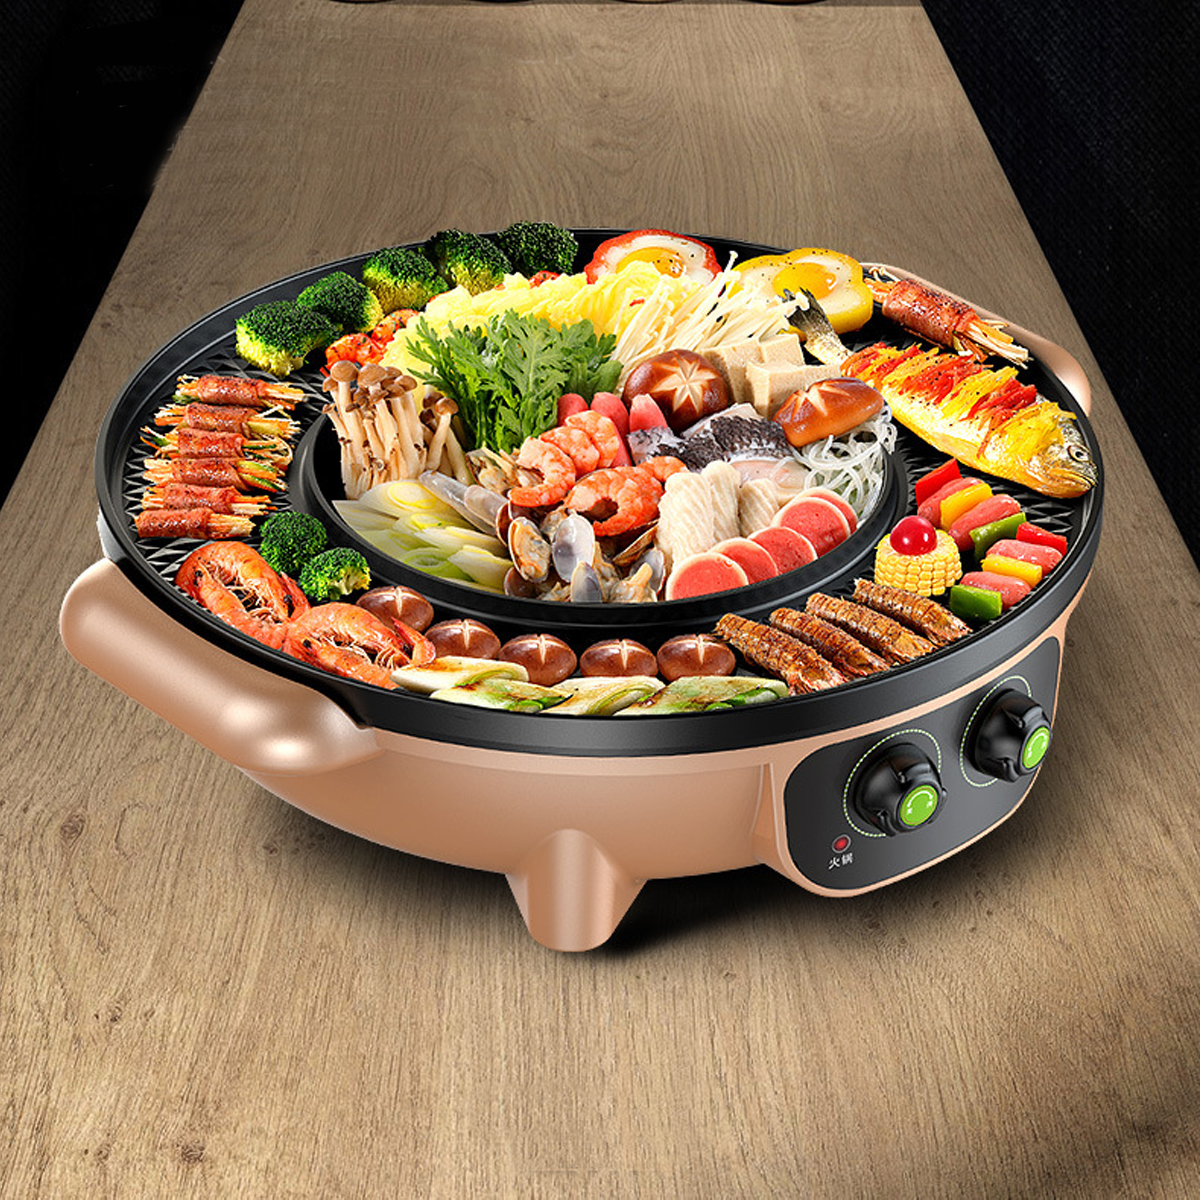 2 In 1 Barbecue Electric Grill Pan Plate Hot Pot Cook Bbq